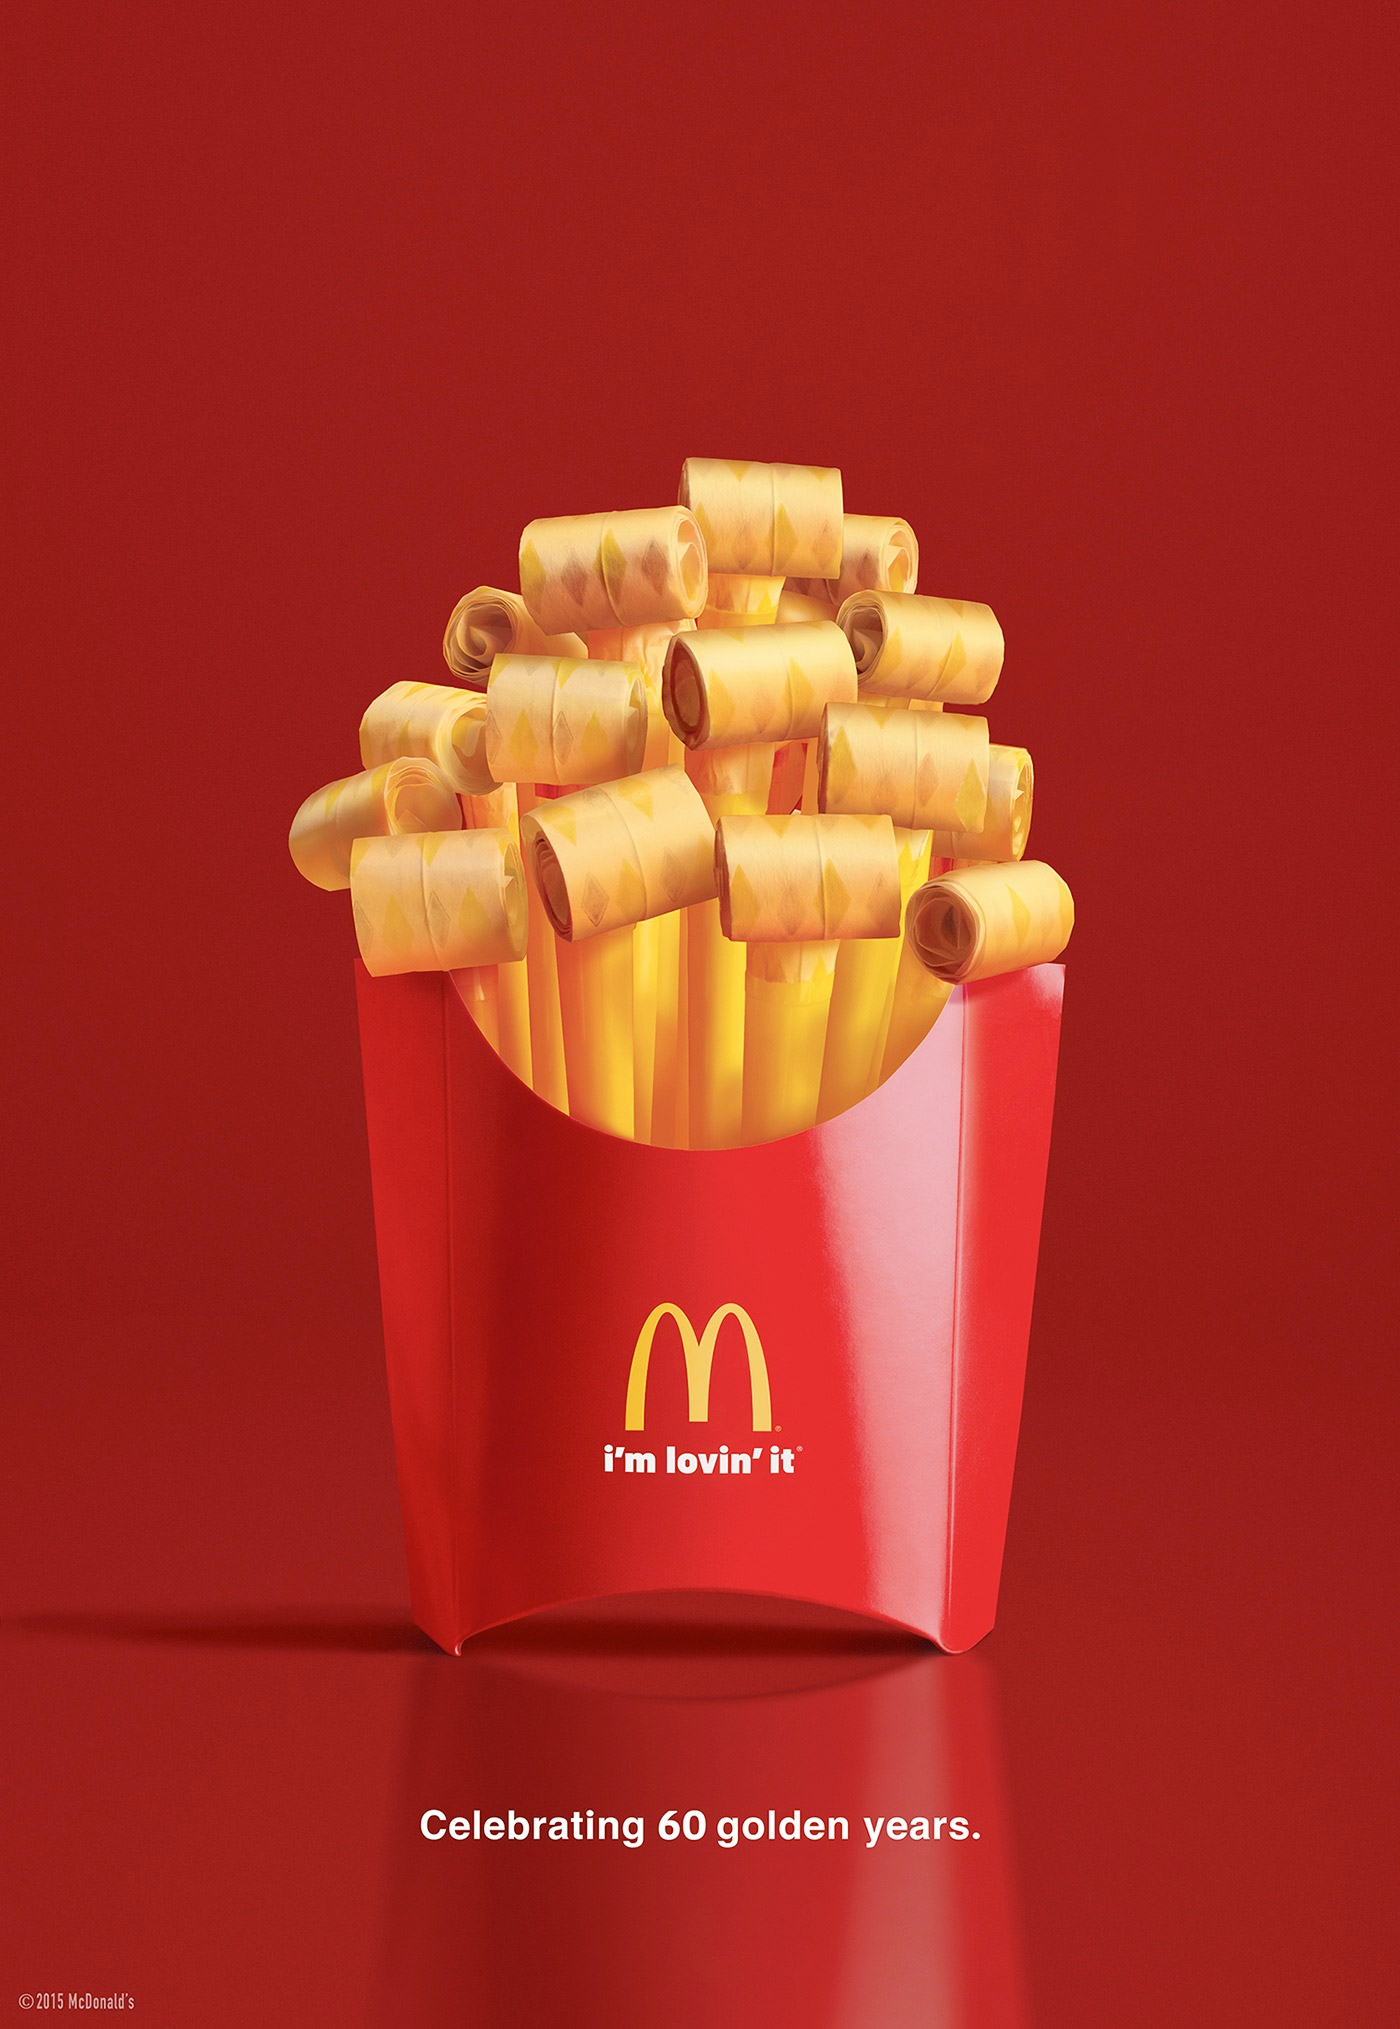 McDonalds Party Fries